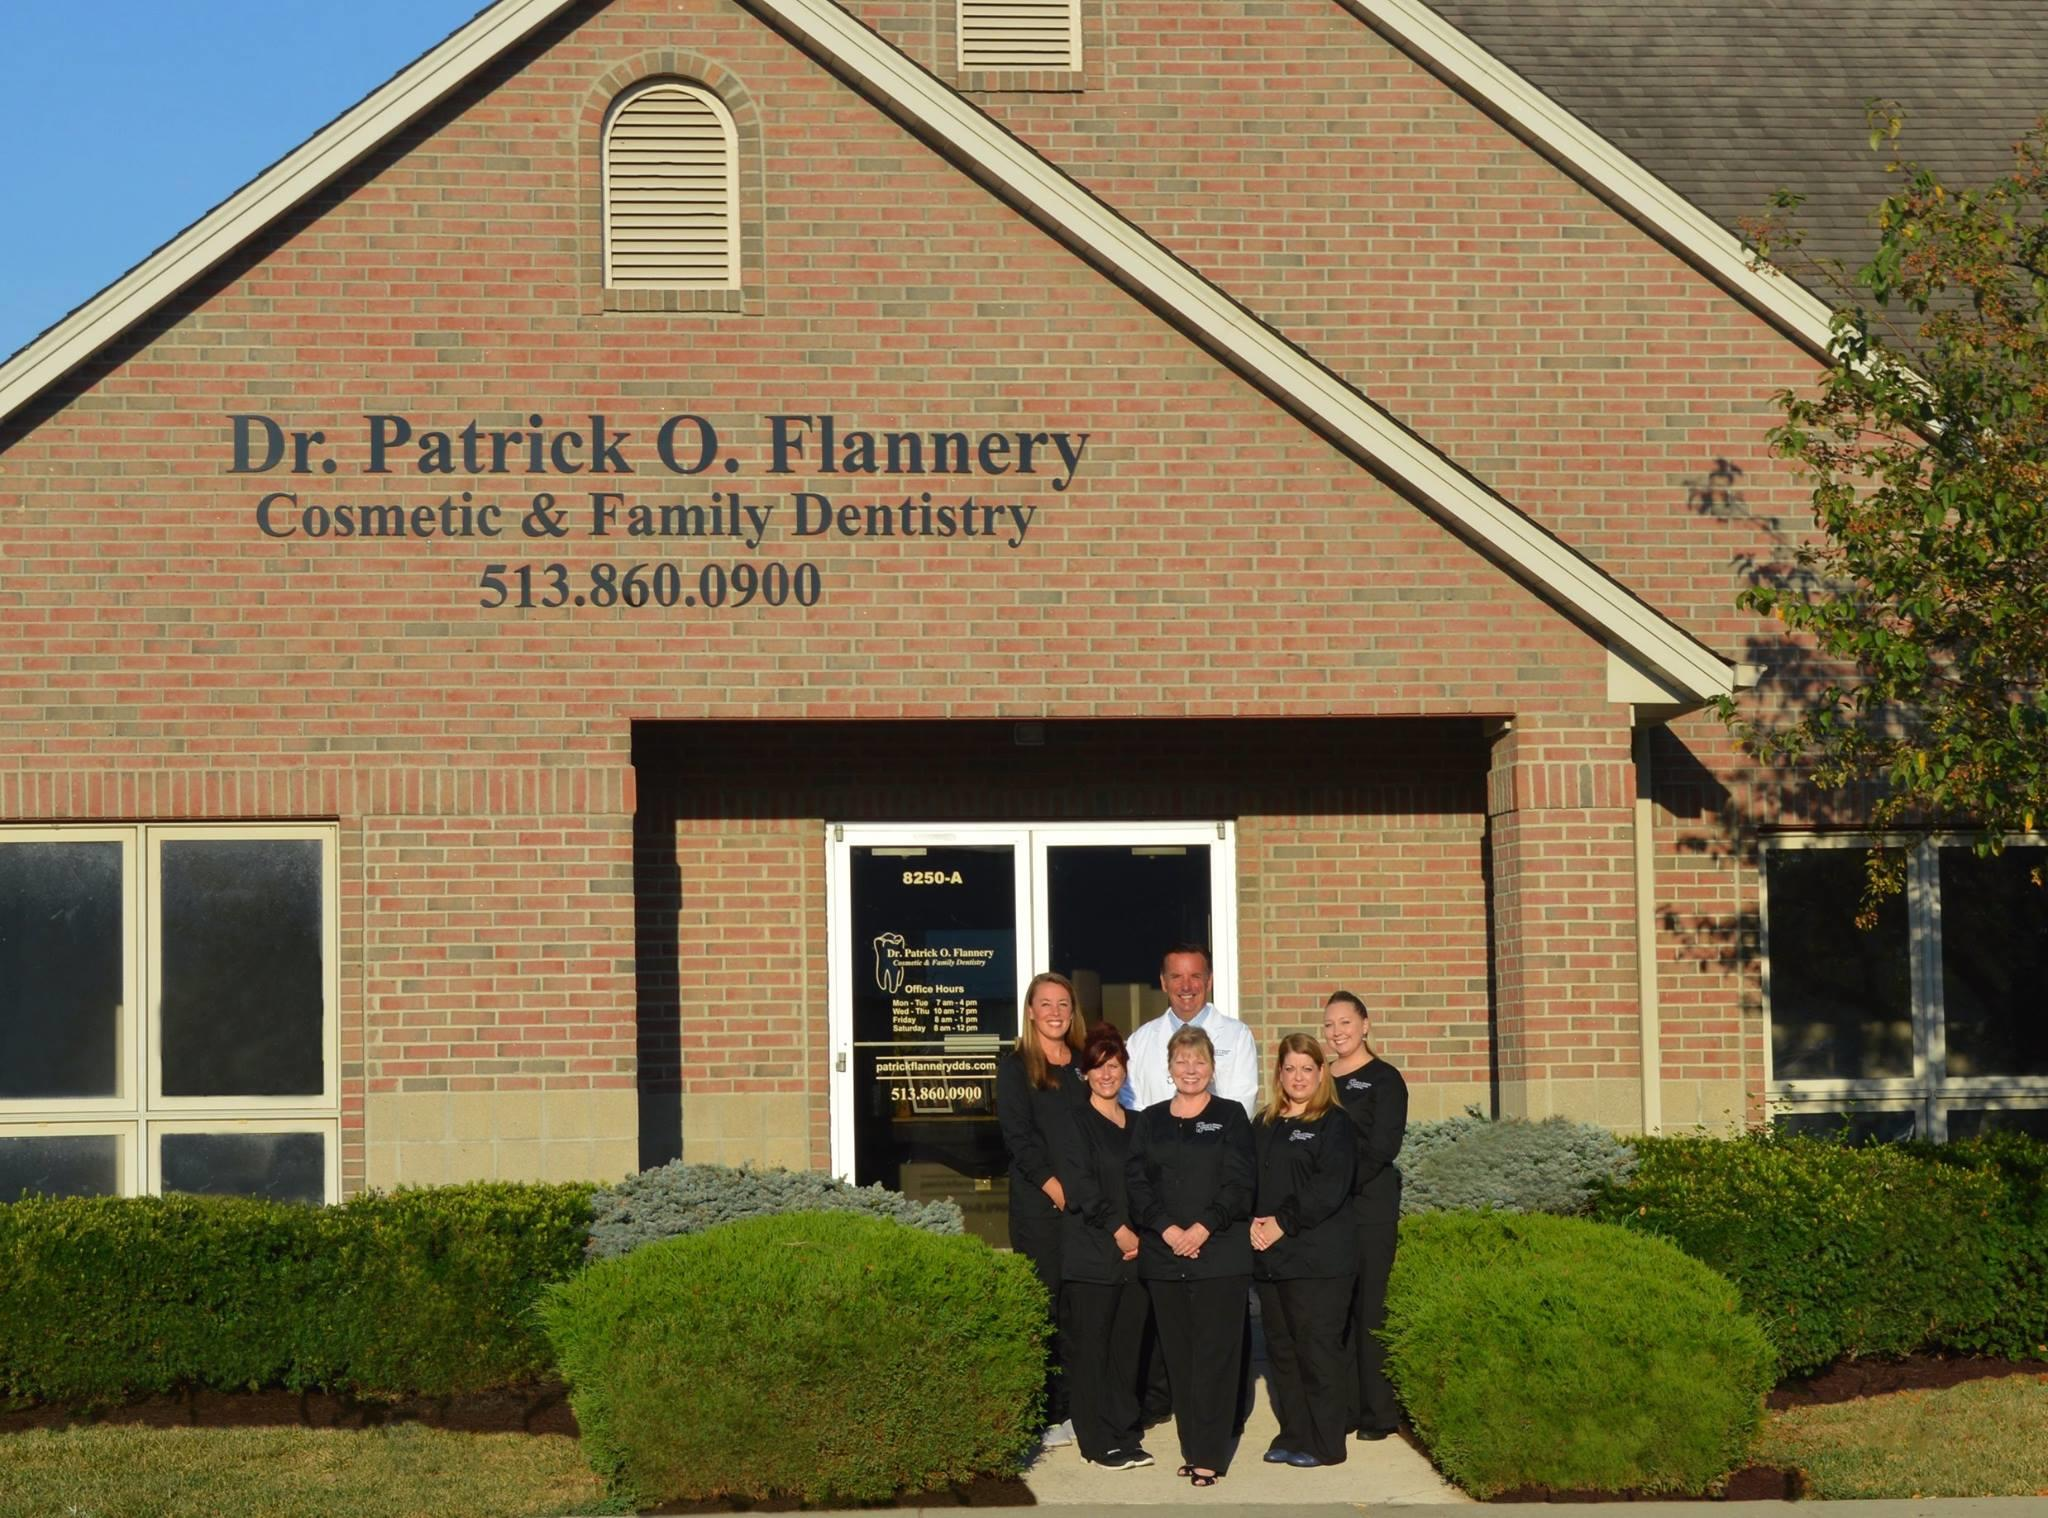 Patrick O. Flannery, DDS, Inc. image 2